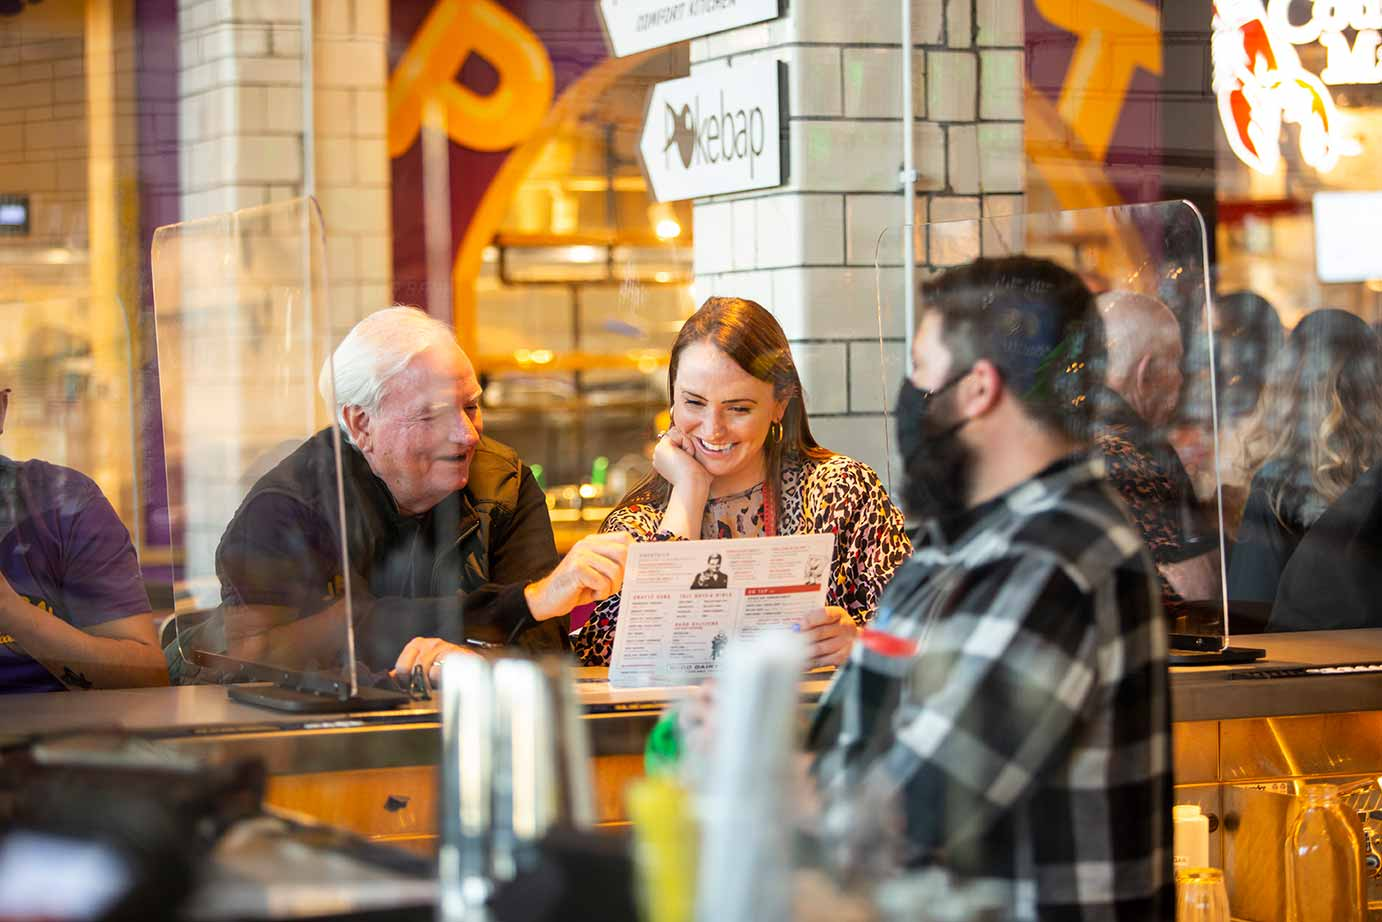 Older man with smiling young woman reviewing a menu while seated at a bar.